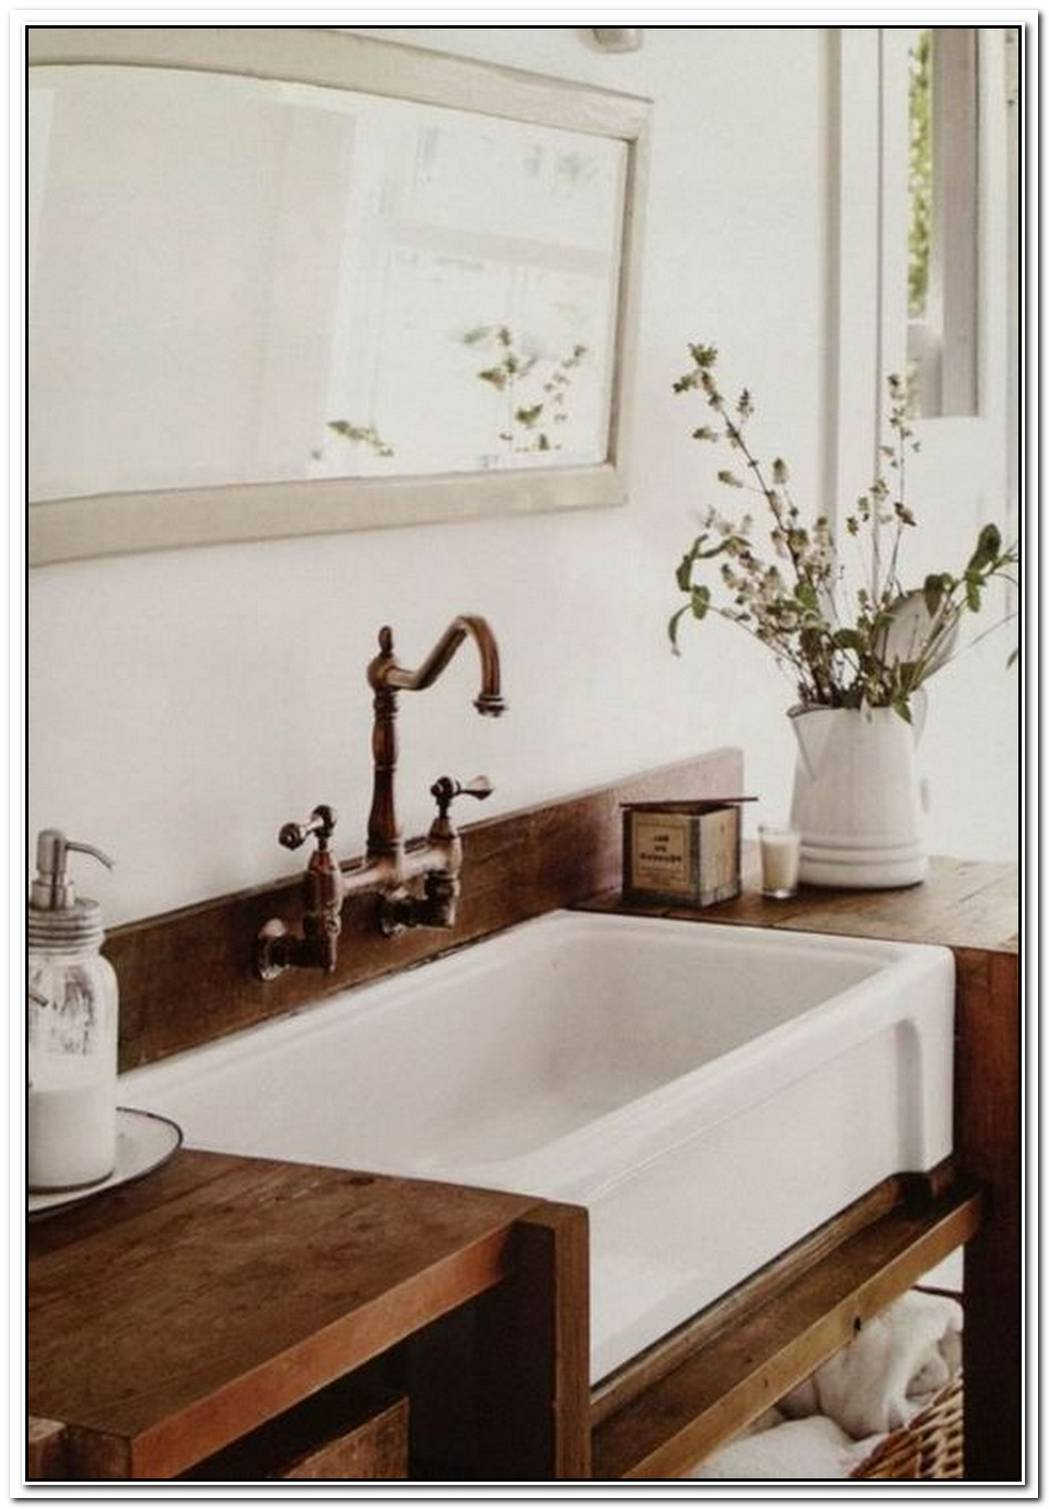 Bathroom Farmhouse Wood Apron Sink